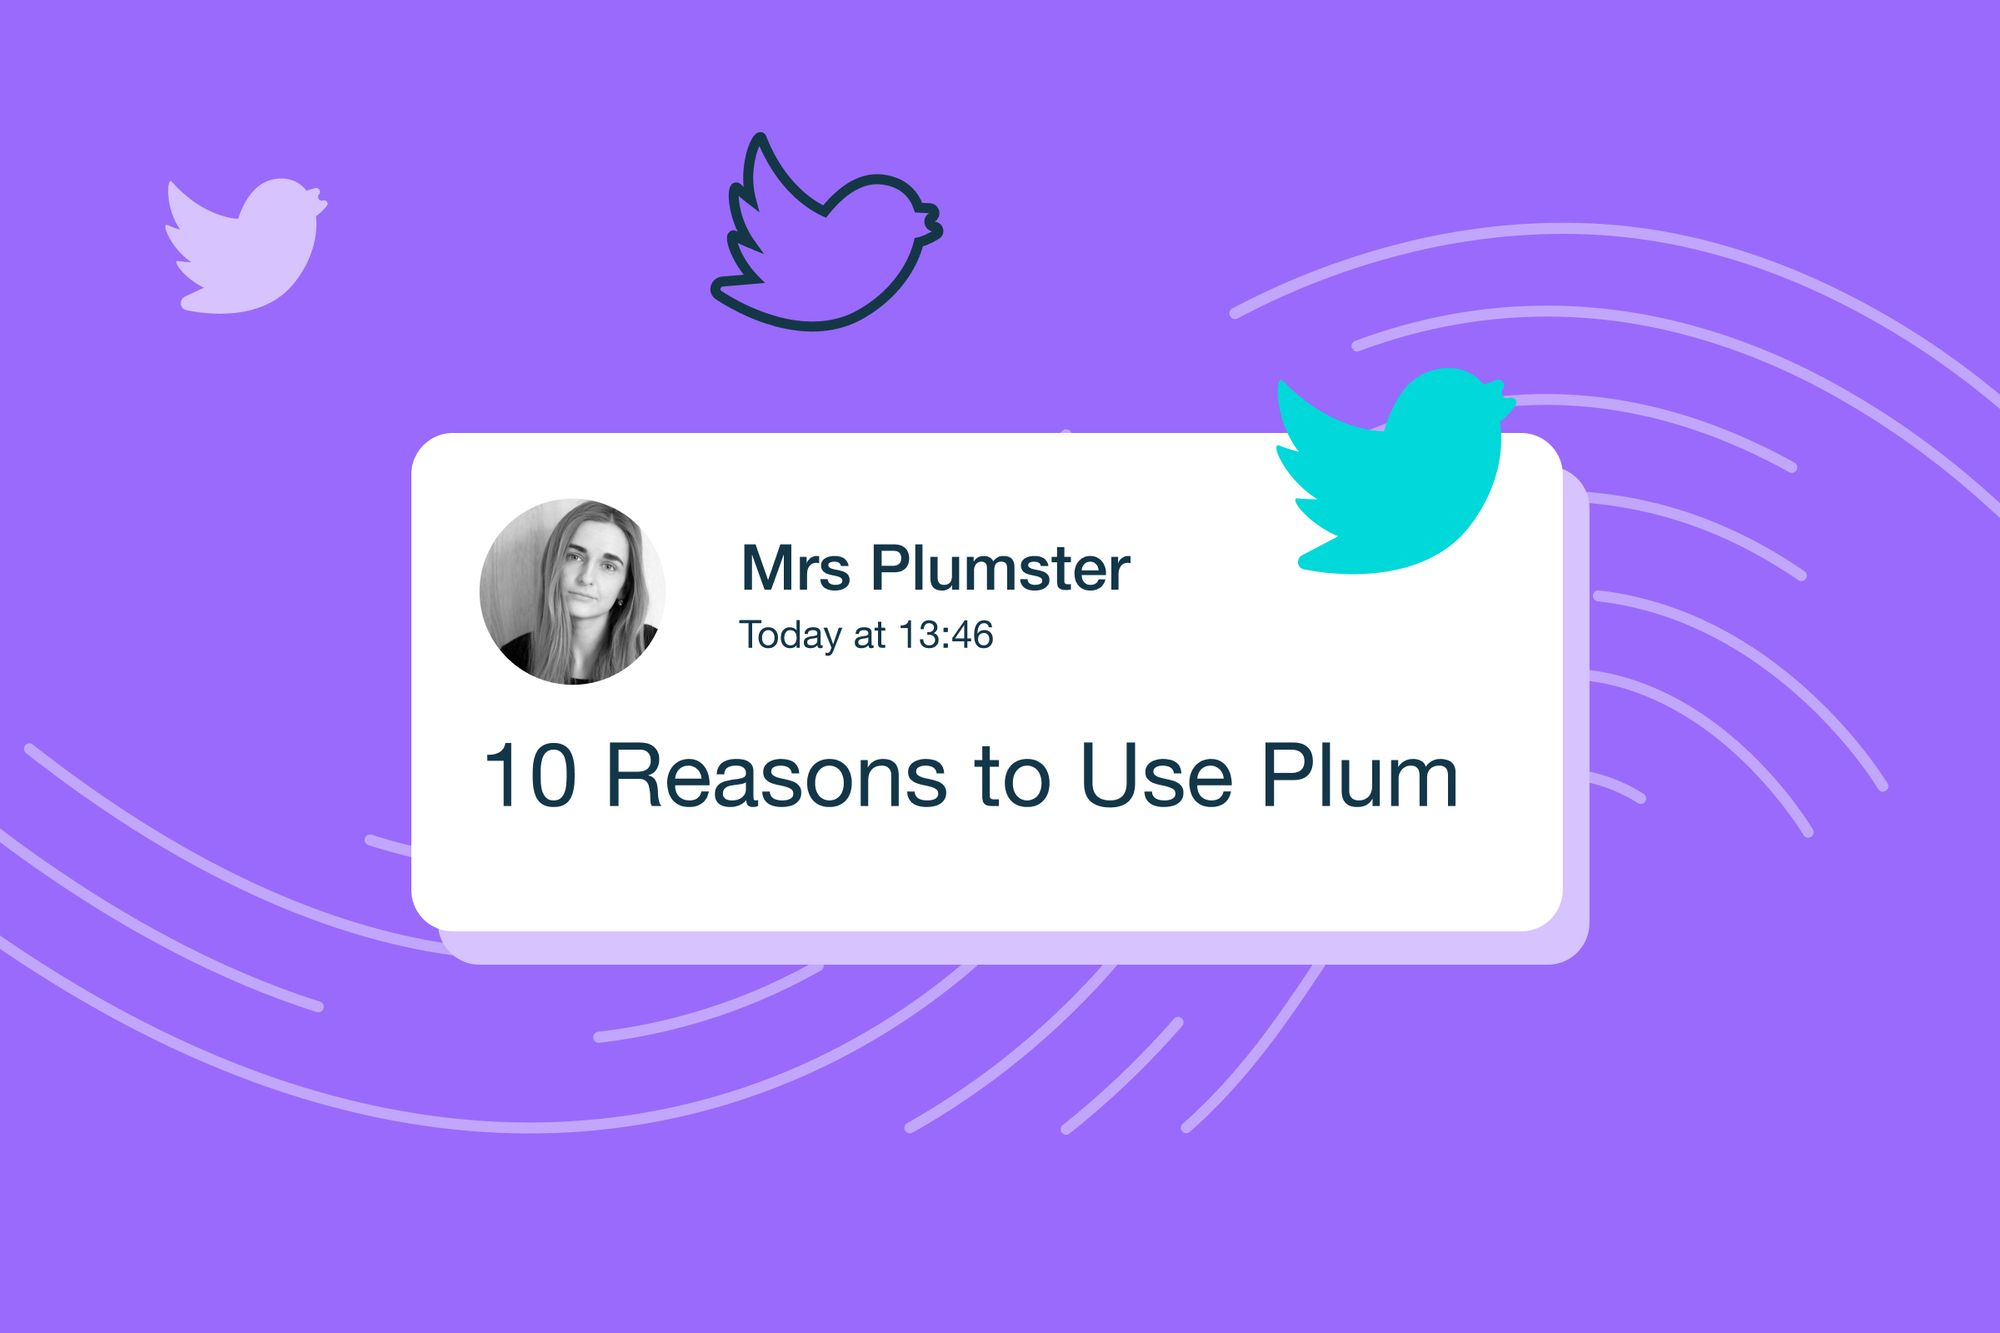 a mock twitter card shows the 10 reasons to use Plum